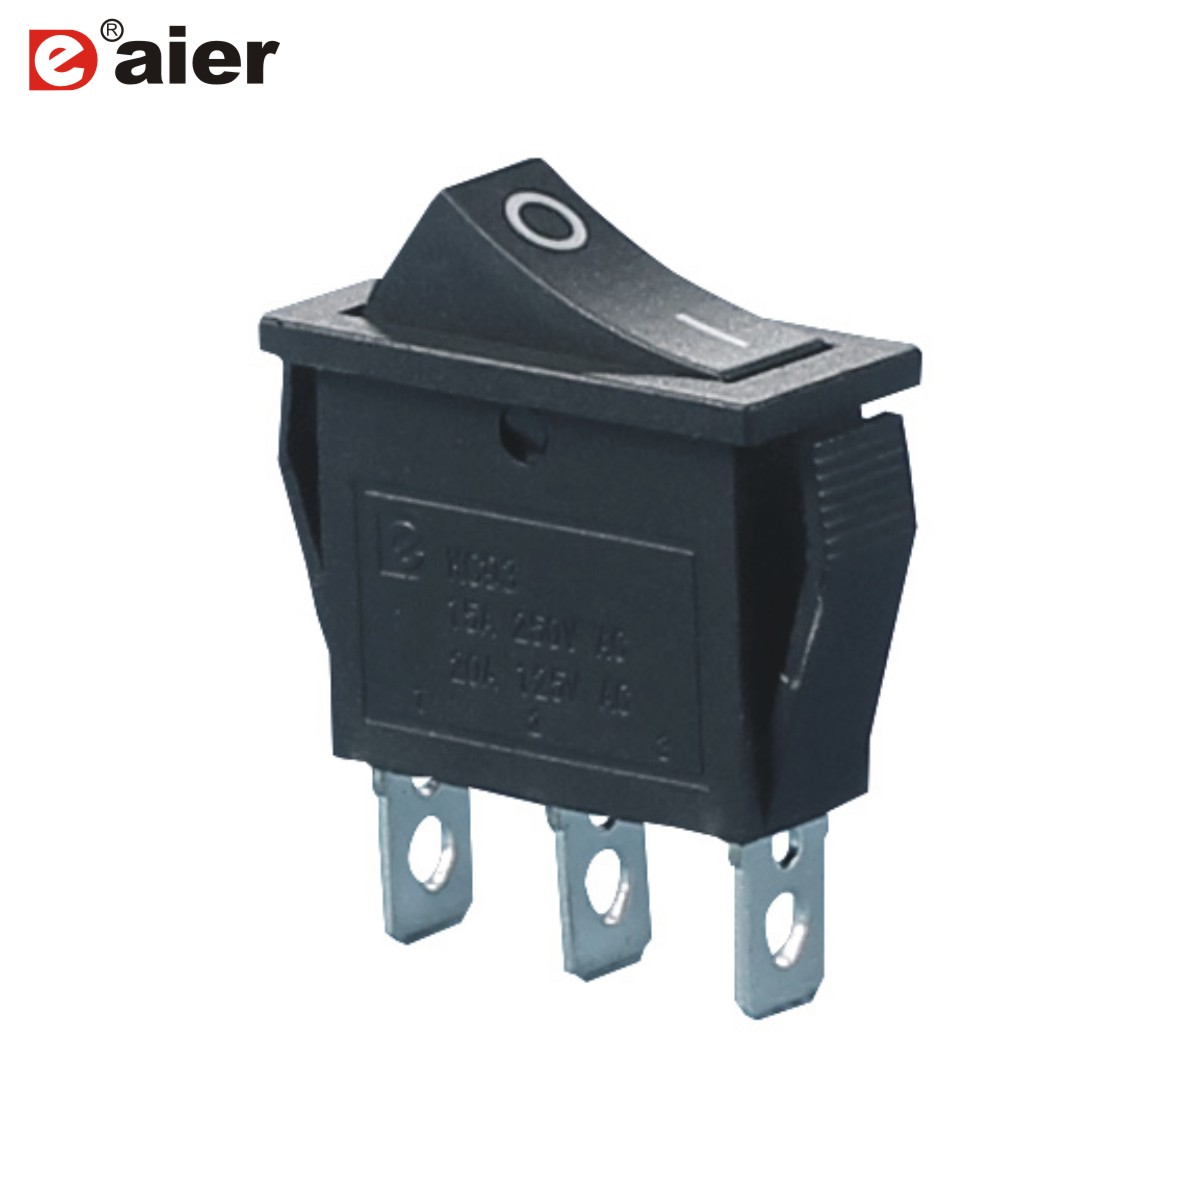 hight resolution of 5pcs on on 3 pins 2 position rocker switch t105 250v 15 amp spdt 10 28mm 20a 125vac switches single pole without light